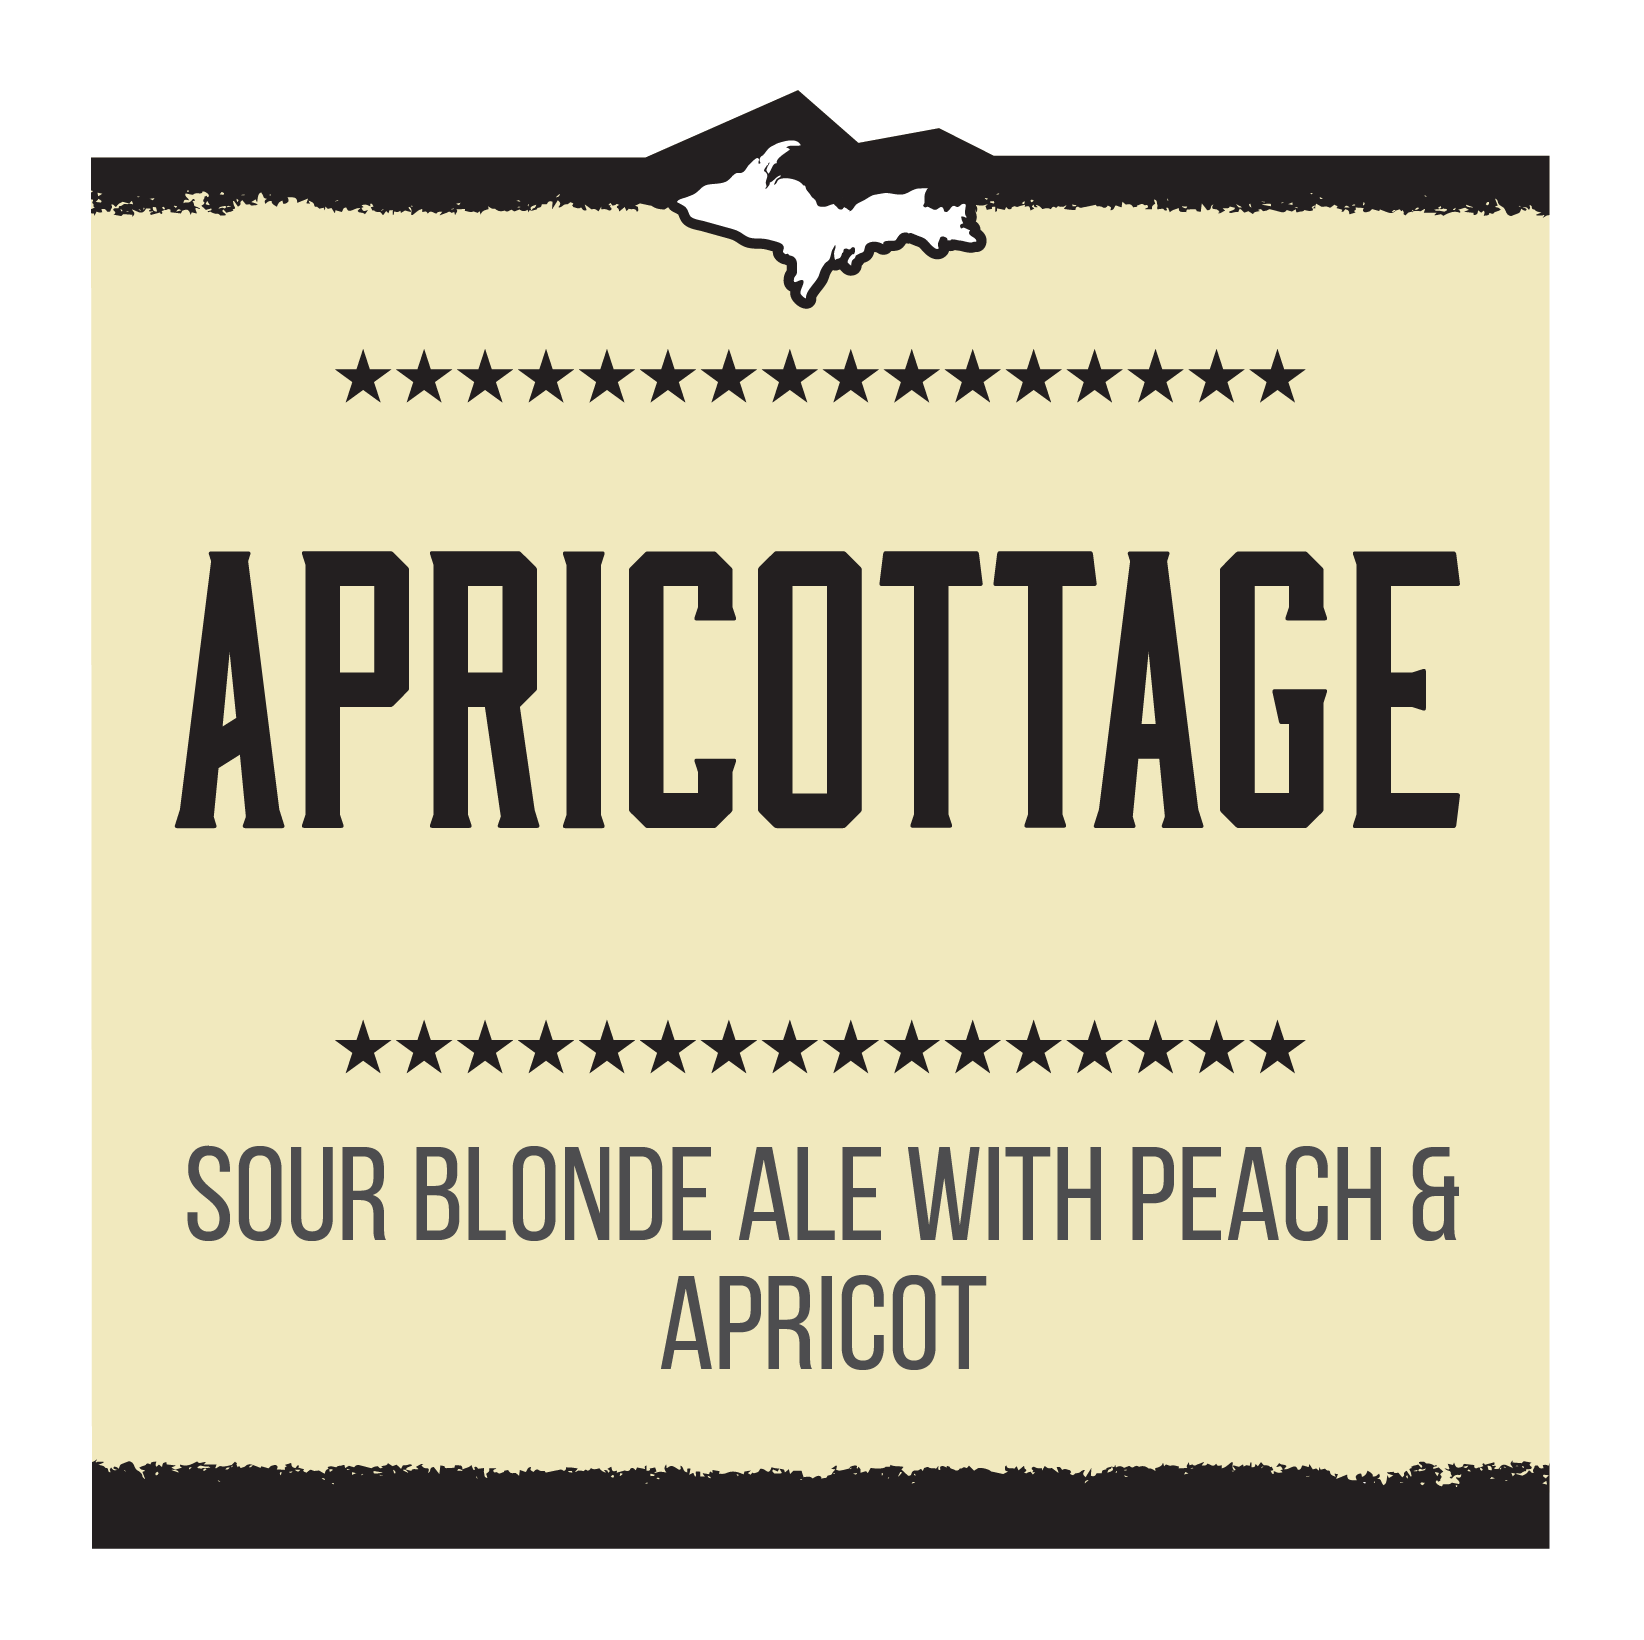 Boatload Brewers' Series – Apricottage Brand Rendering